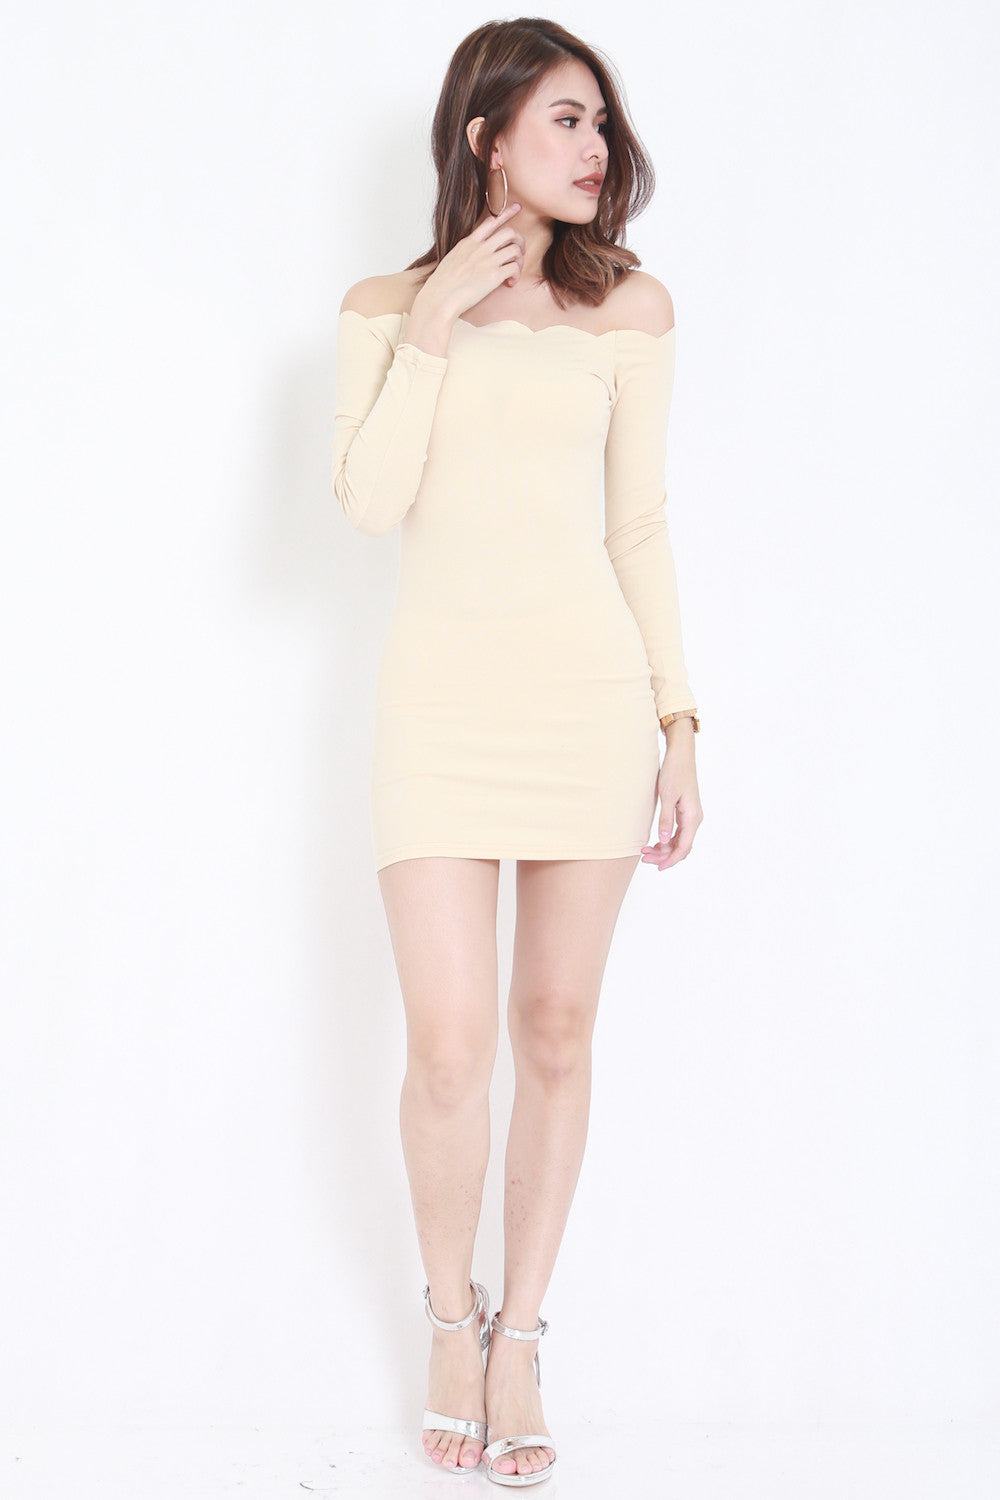 nude ls  LS Scallop Dress (Nude) - - 1